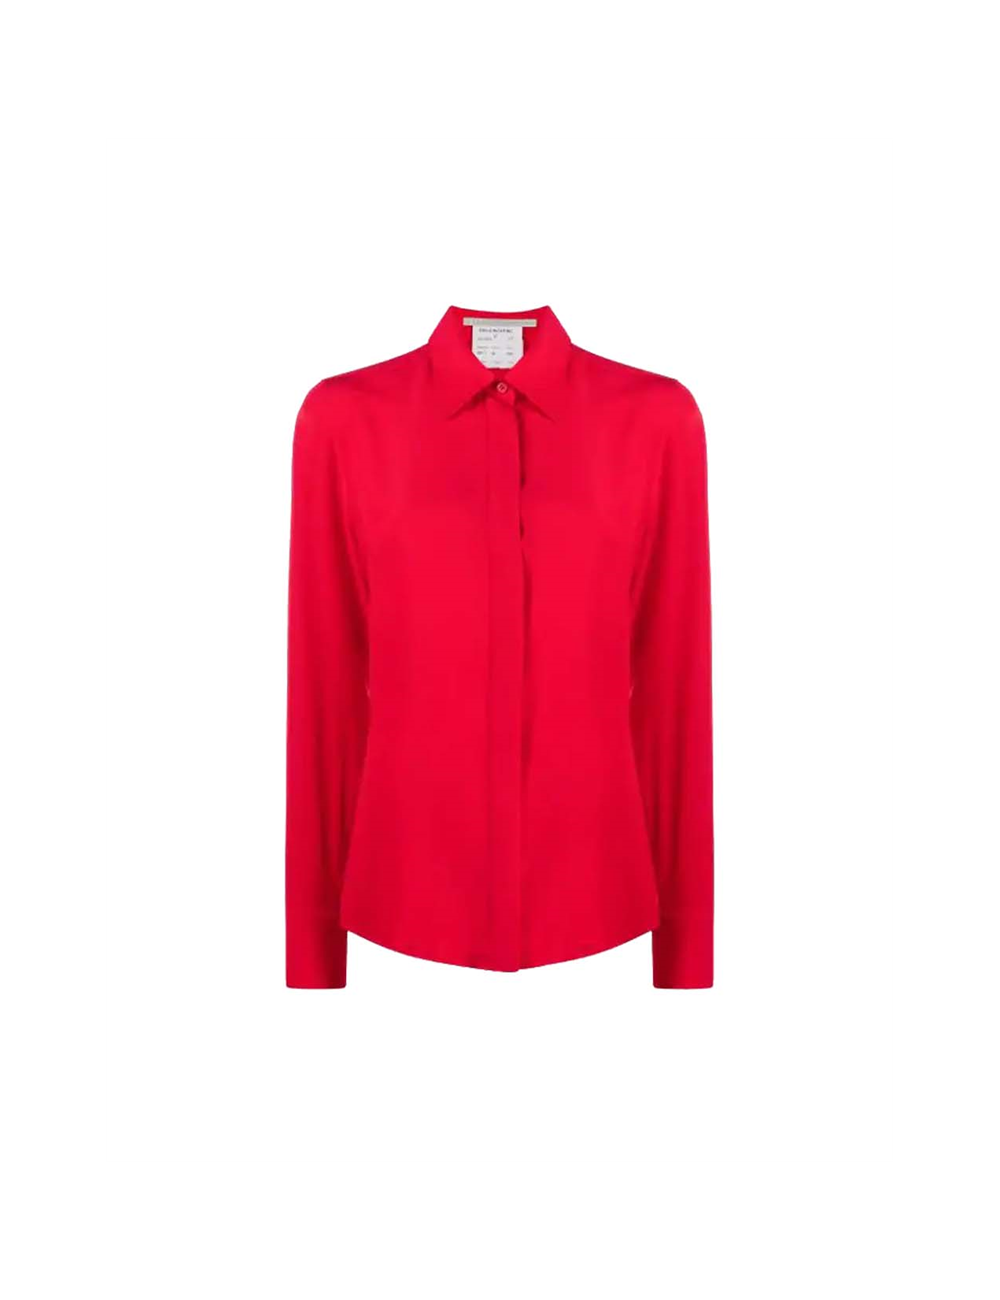 Willow shirt Stella McCartney - BIG BOSS MEGEVE